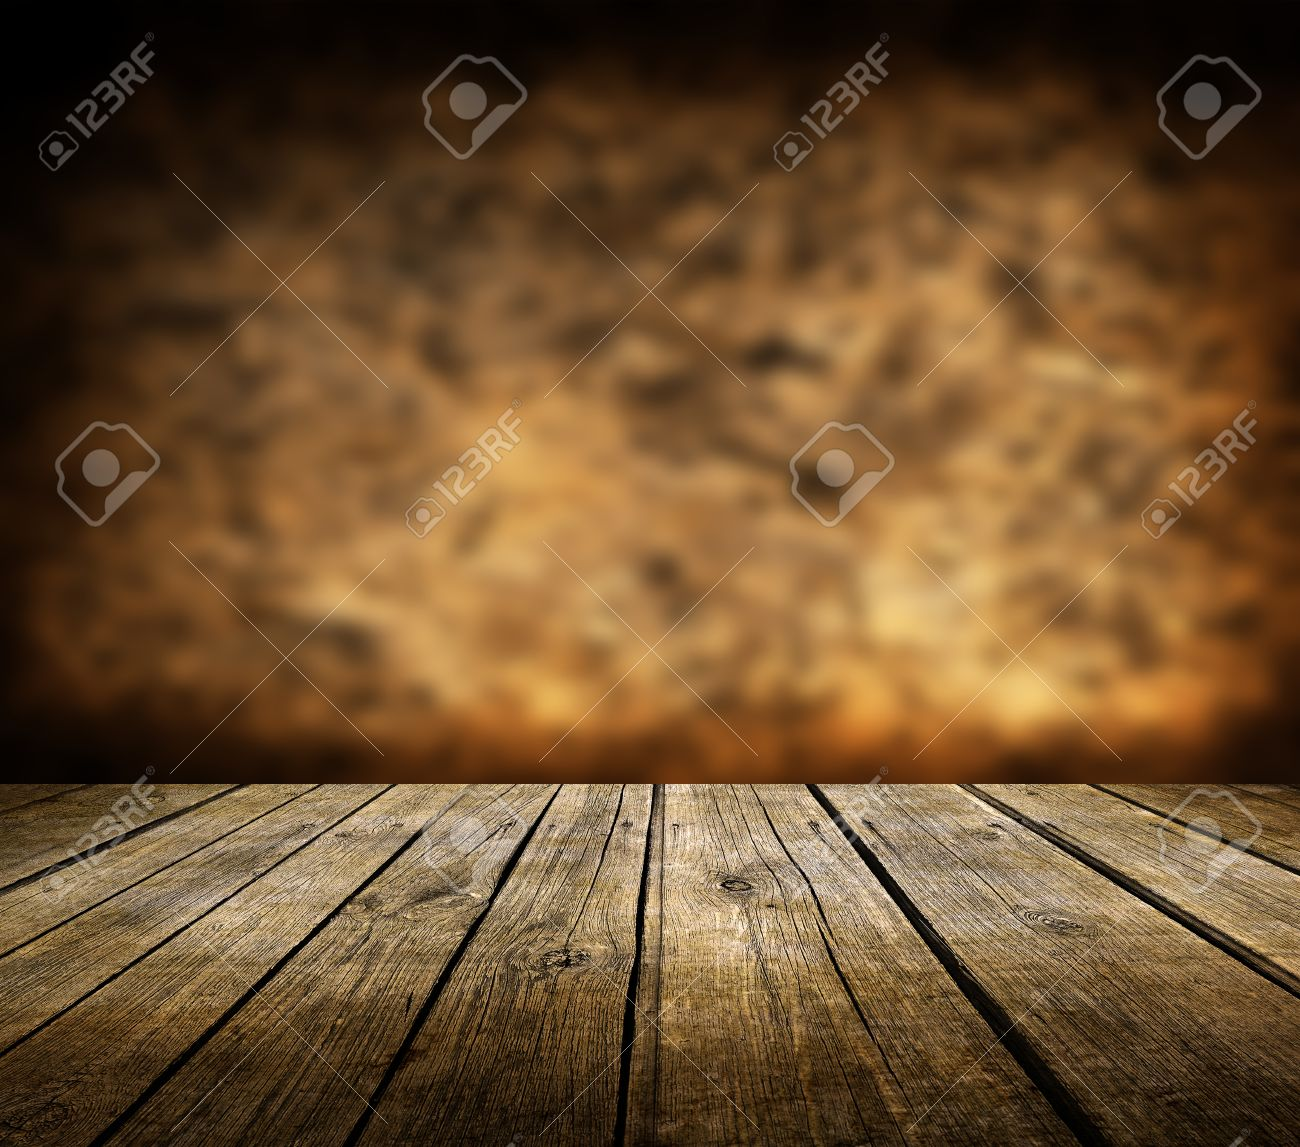 Background image table - Stock Photo Wooden Deck Table And Dark Brown Background Wooden Deck Table And Dark Brown